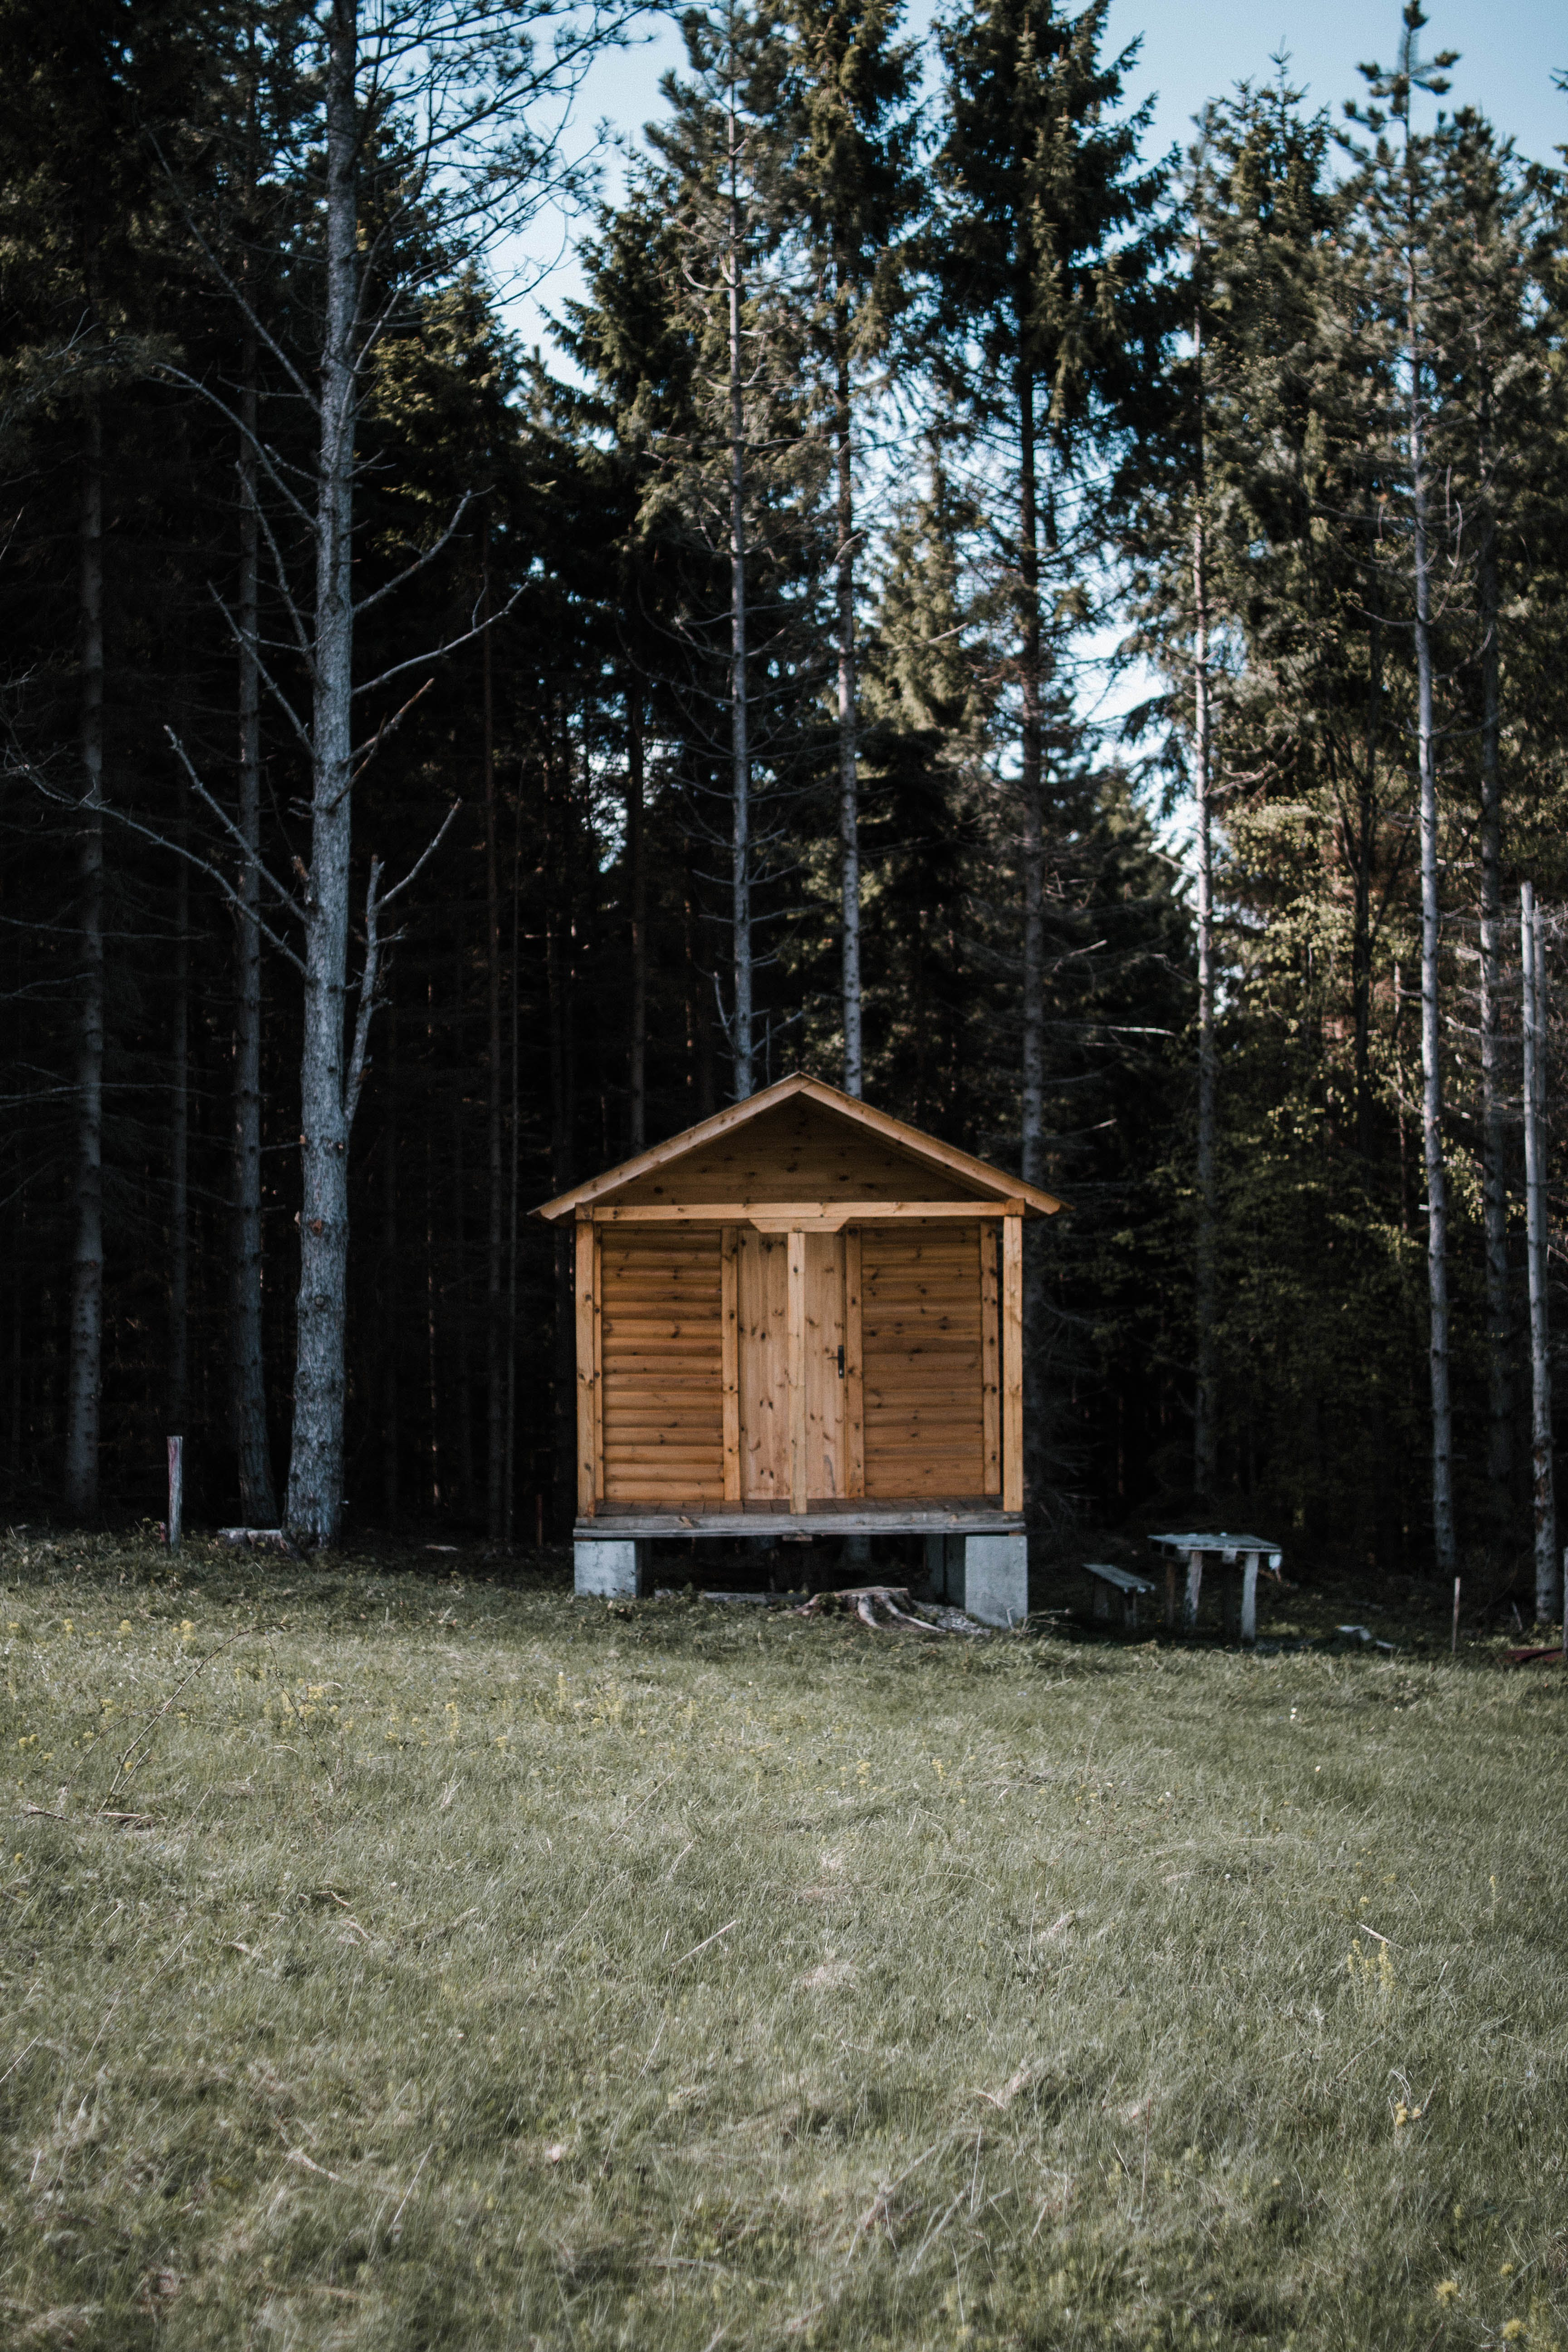 Brown Wooden Cabin Near Trees